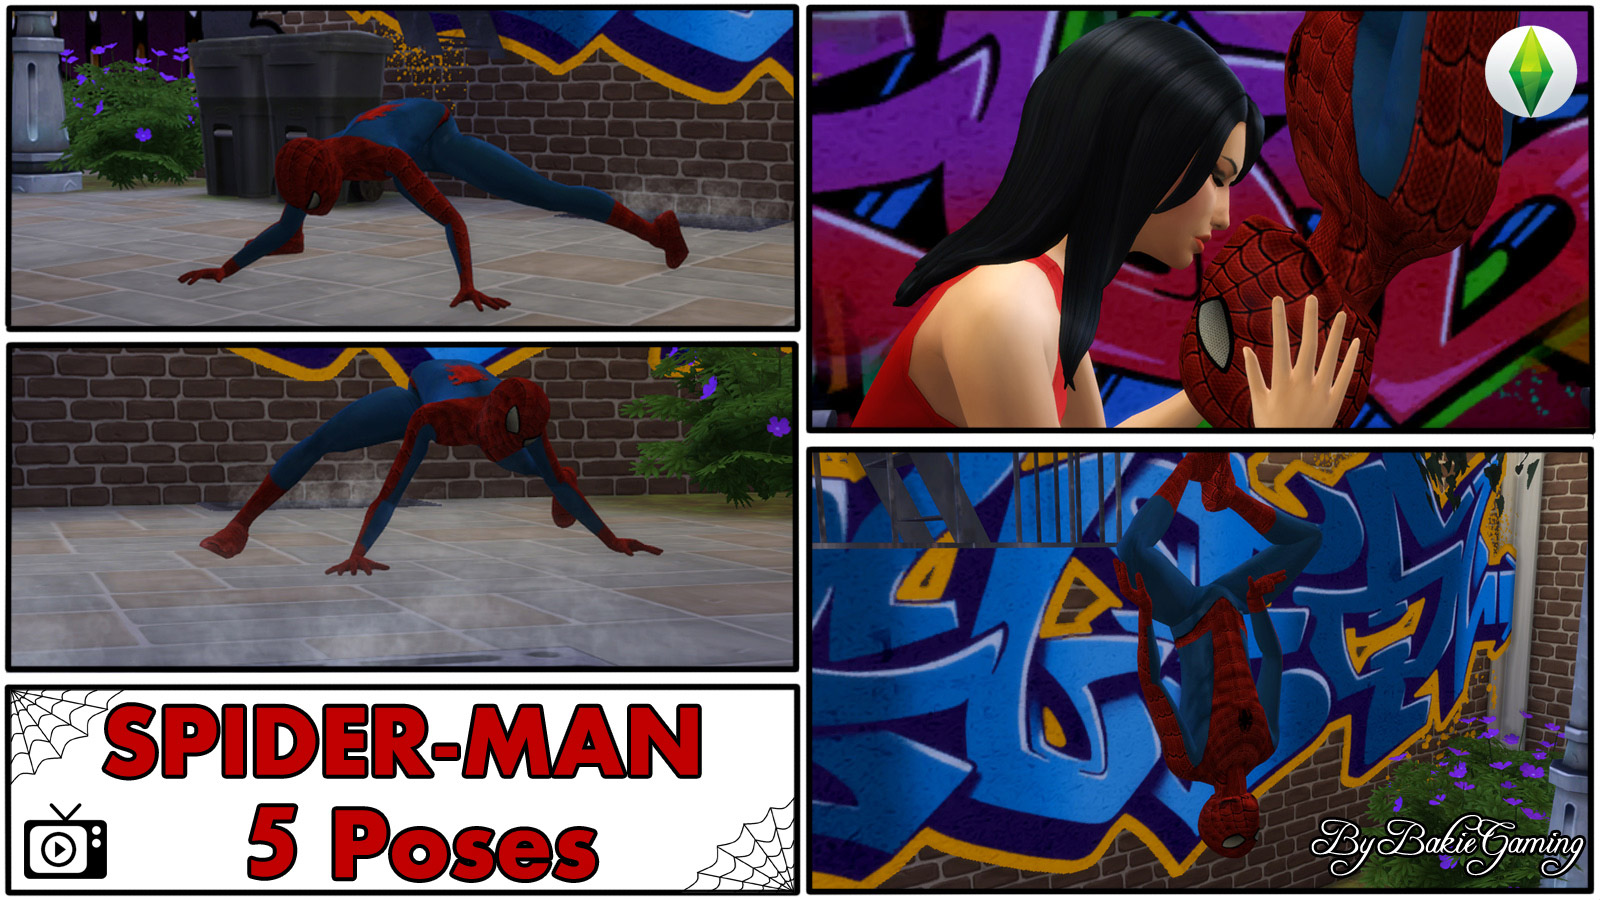 kitchen safety shoes for women furniture ideas spider-man pose pack - the sims 4 catalog